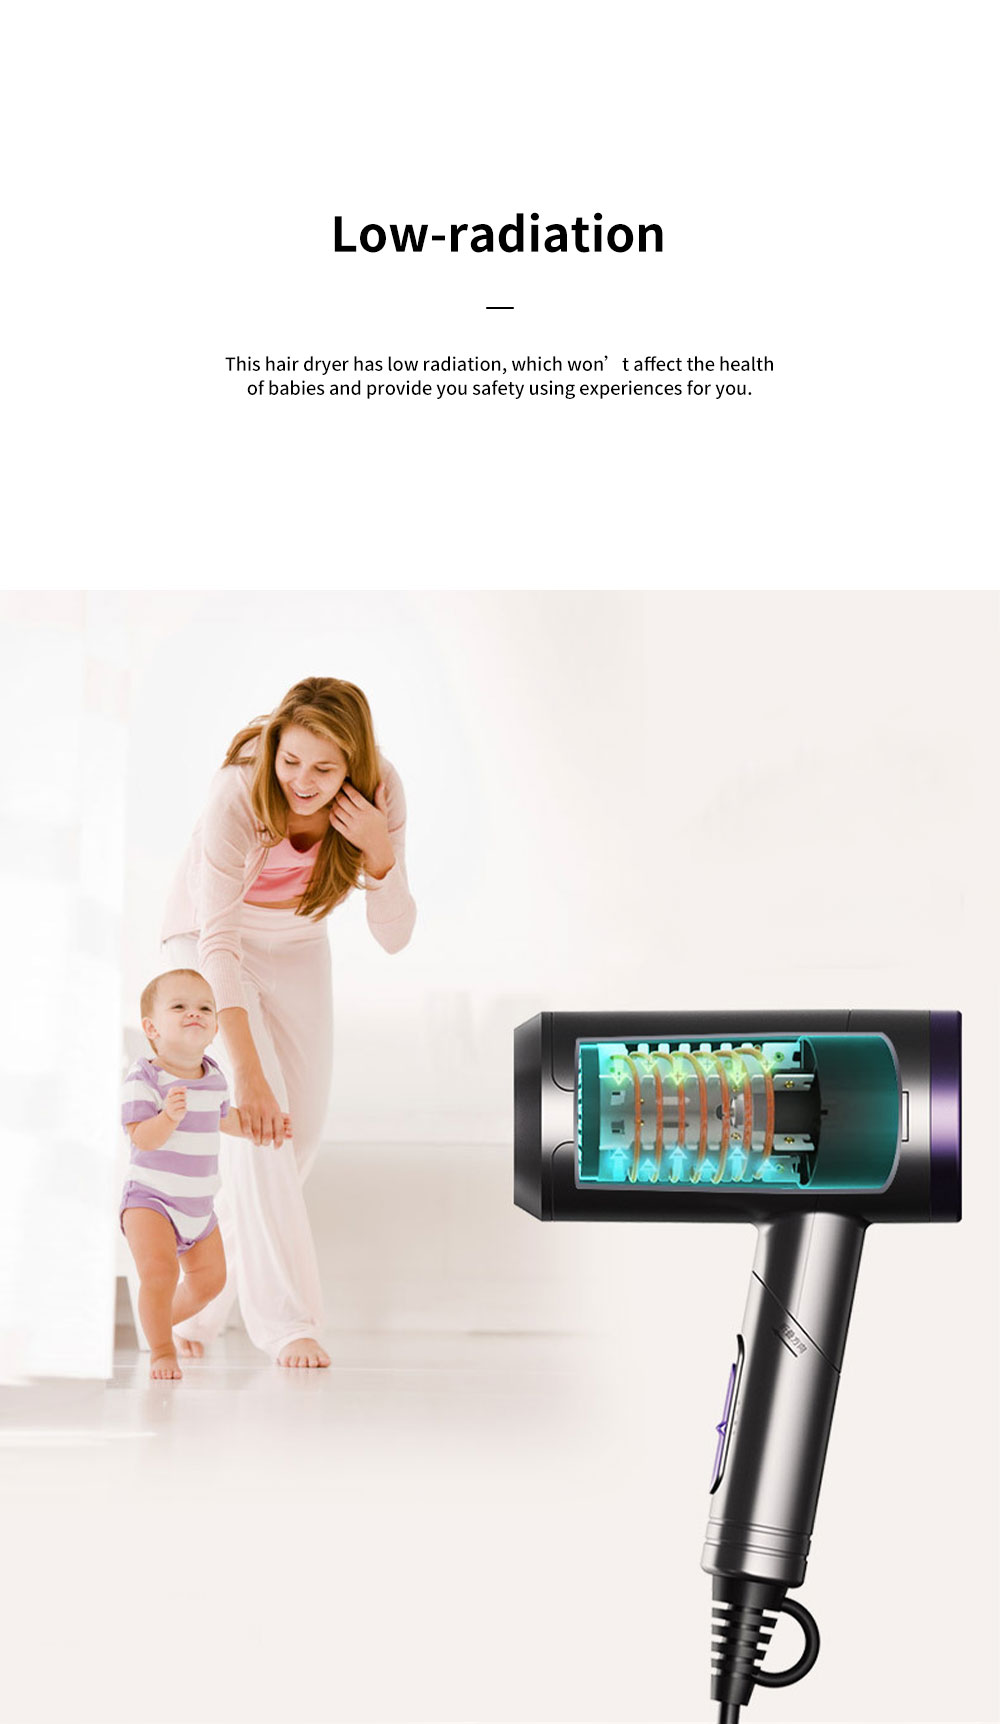 Minimalist Foldable Household Electric Har Dryer Low-Radiation Negative Ion Protection Bioceramic Far Infrared Heating Hair Dryer 2